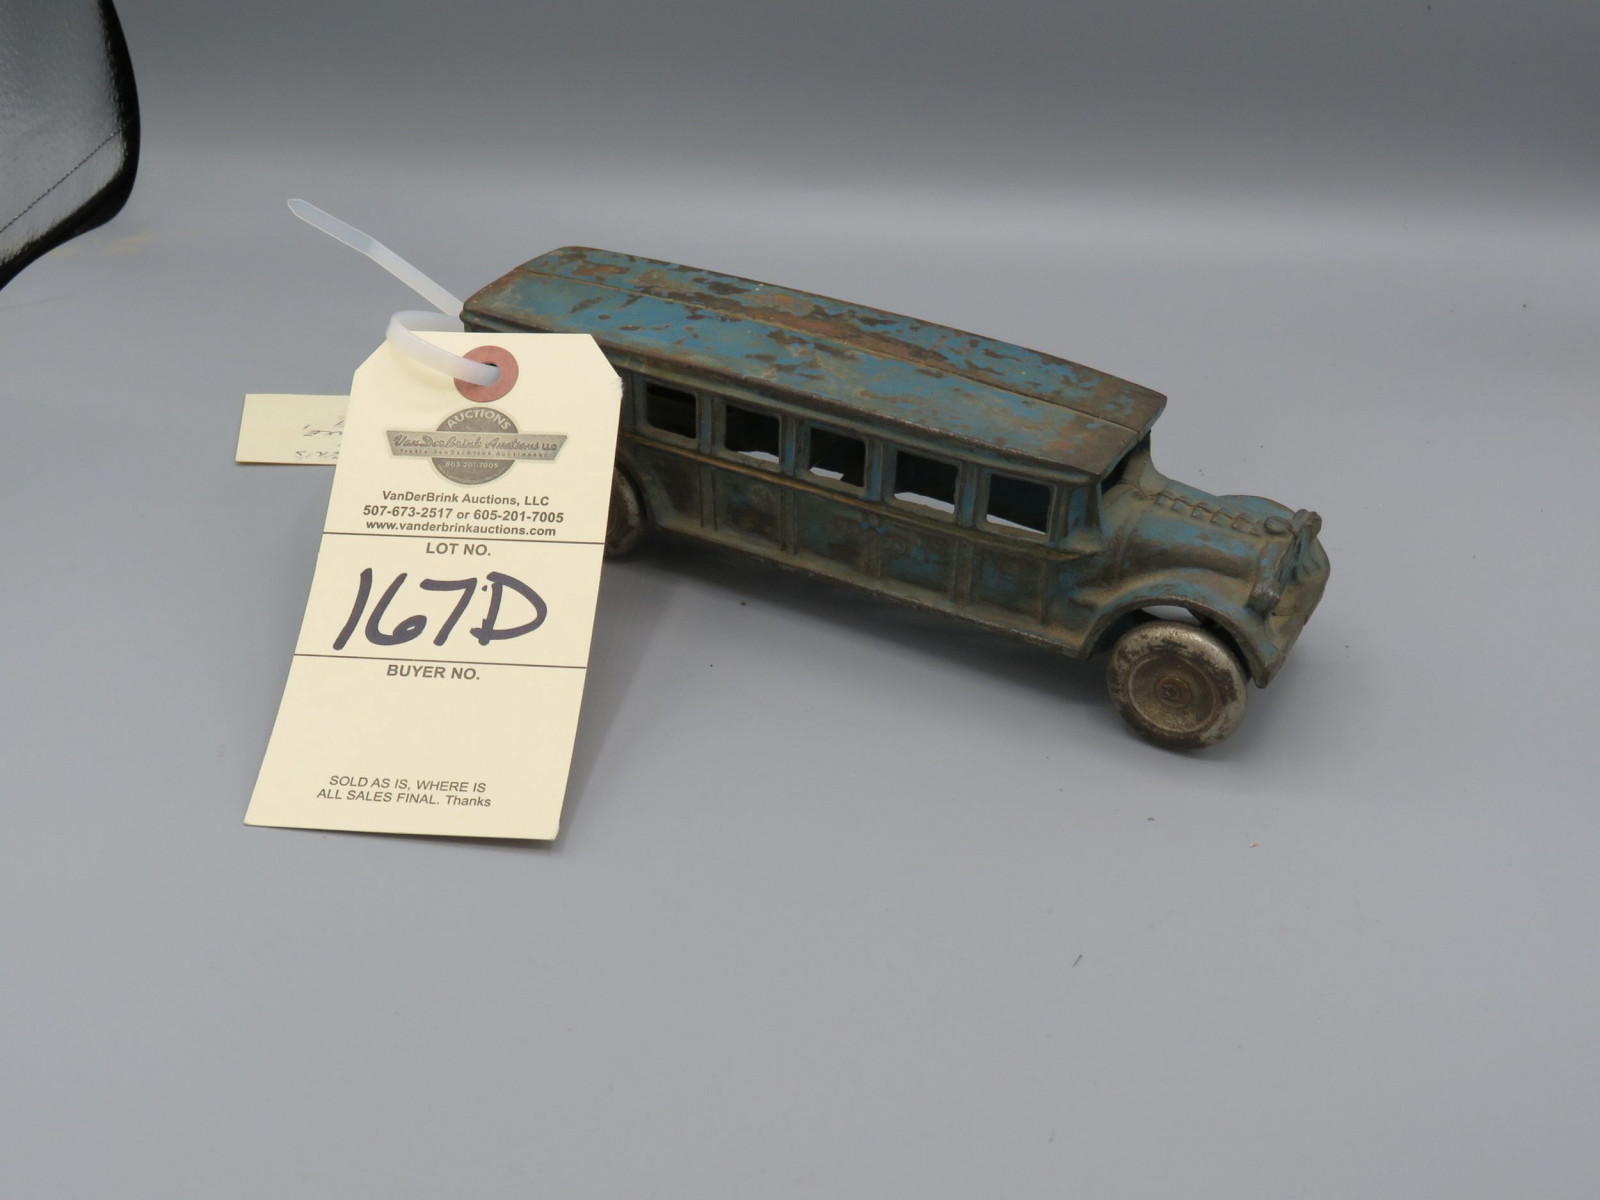 Vintage Cast Iron Bus @1926 Approx.. 10 inches - Image 1